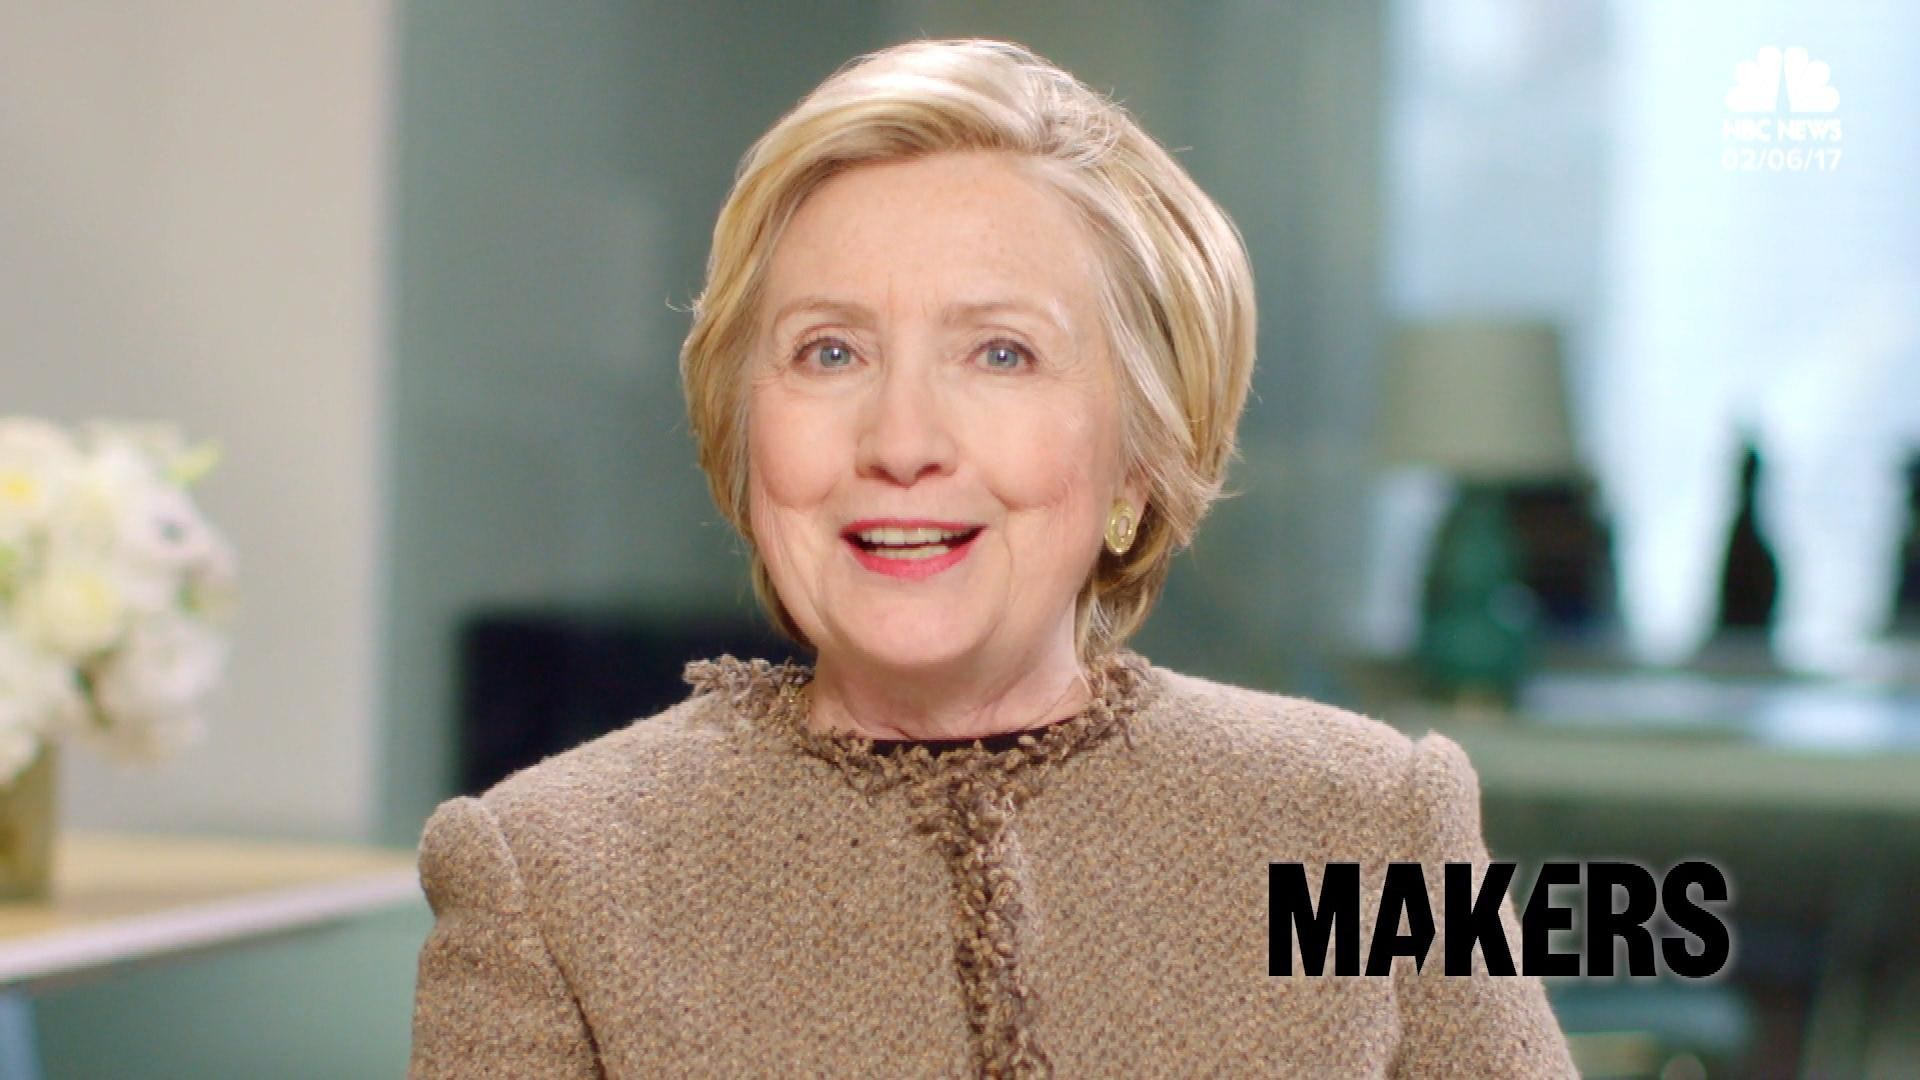 Hillary Clinton Says the 'Future is Female' in New Statement – NBC News